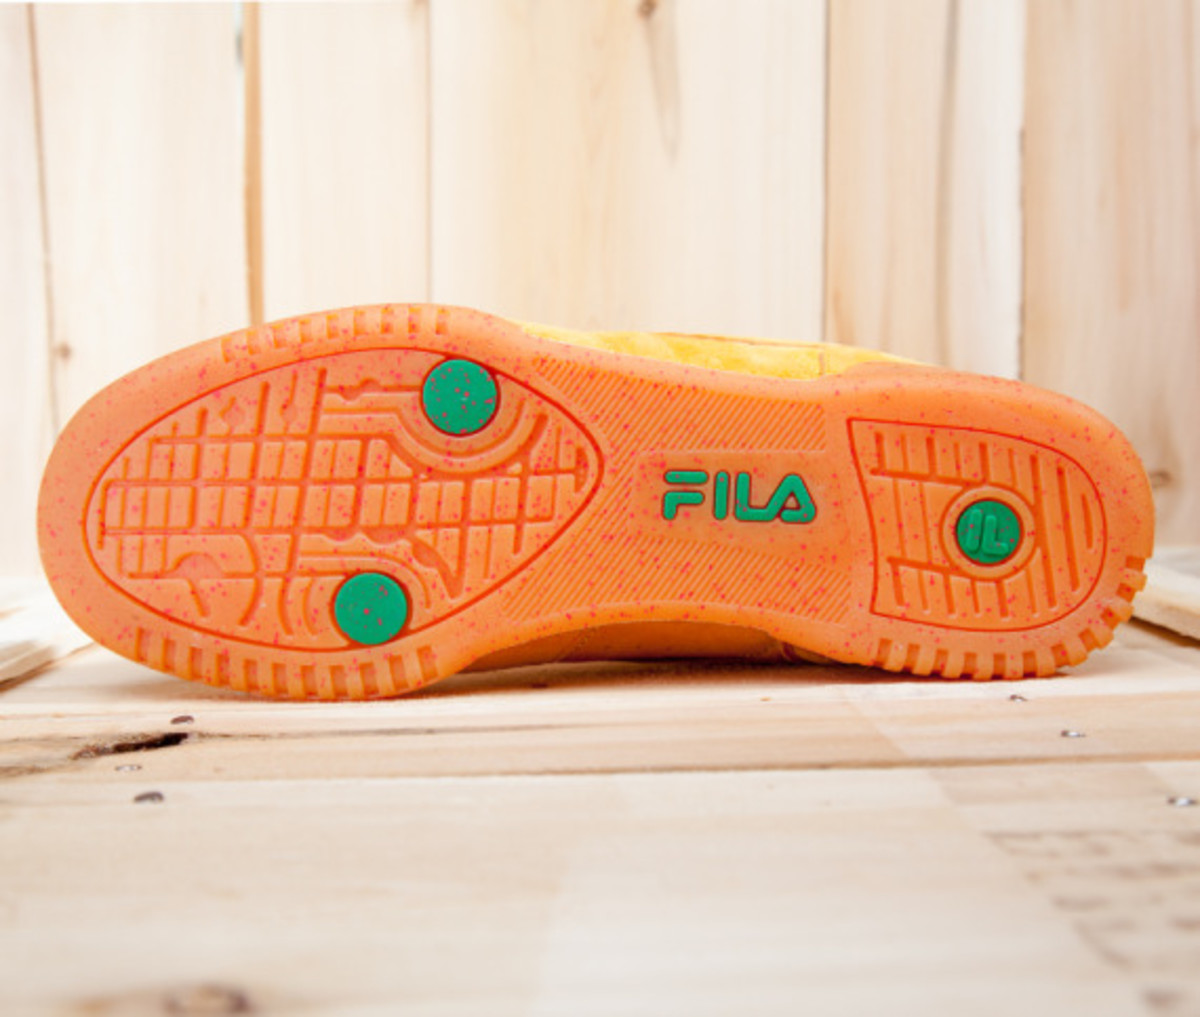 fly-kix-fila-original-fitness-peach-state-13